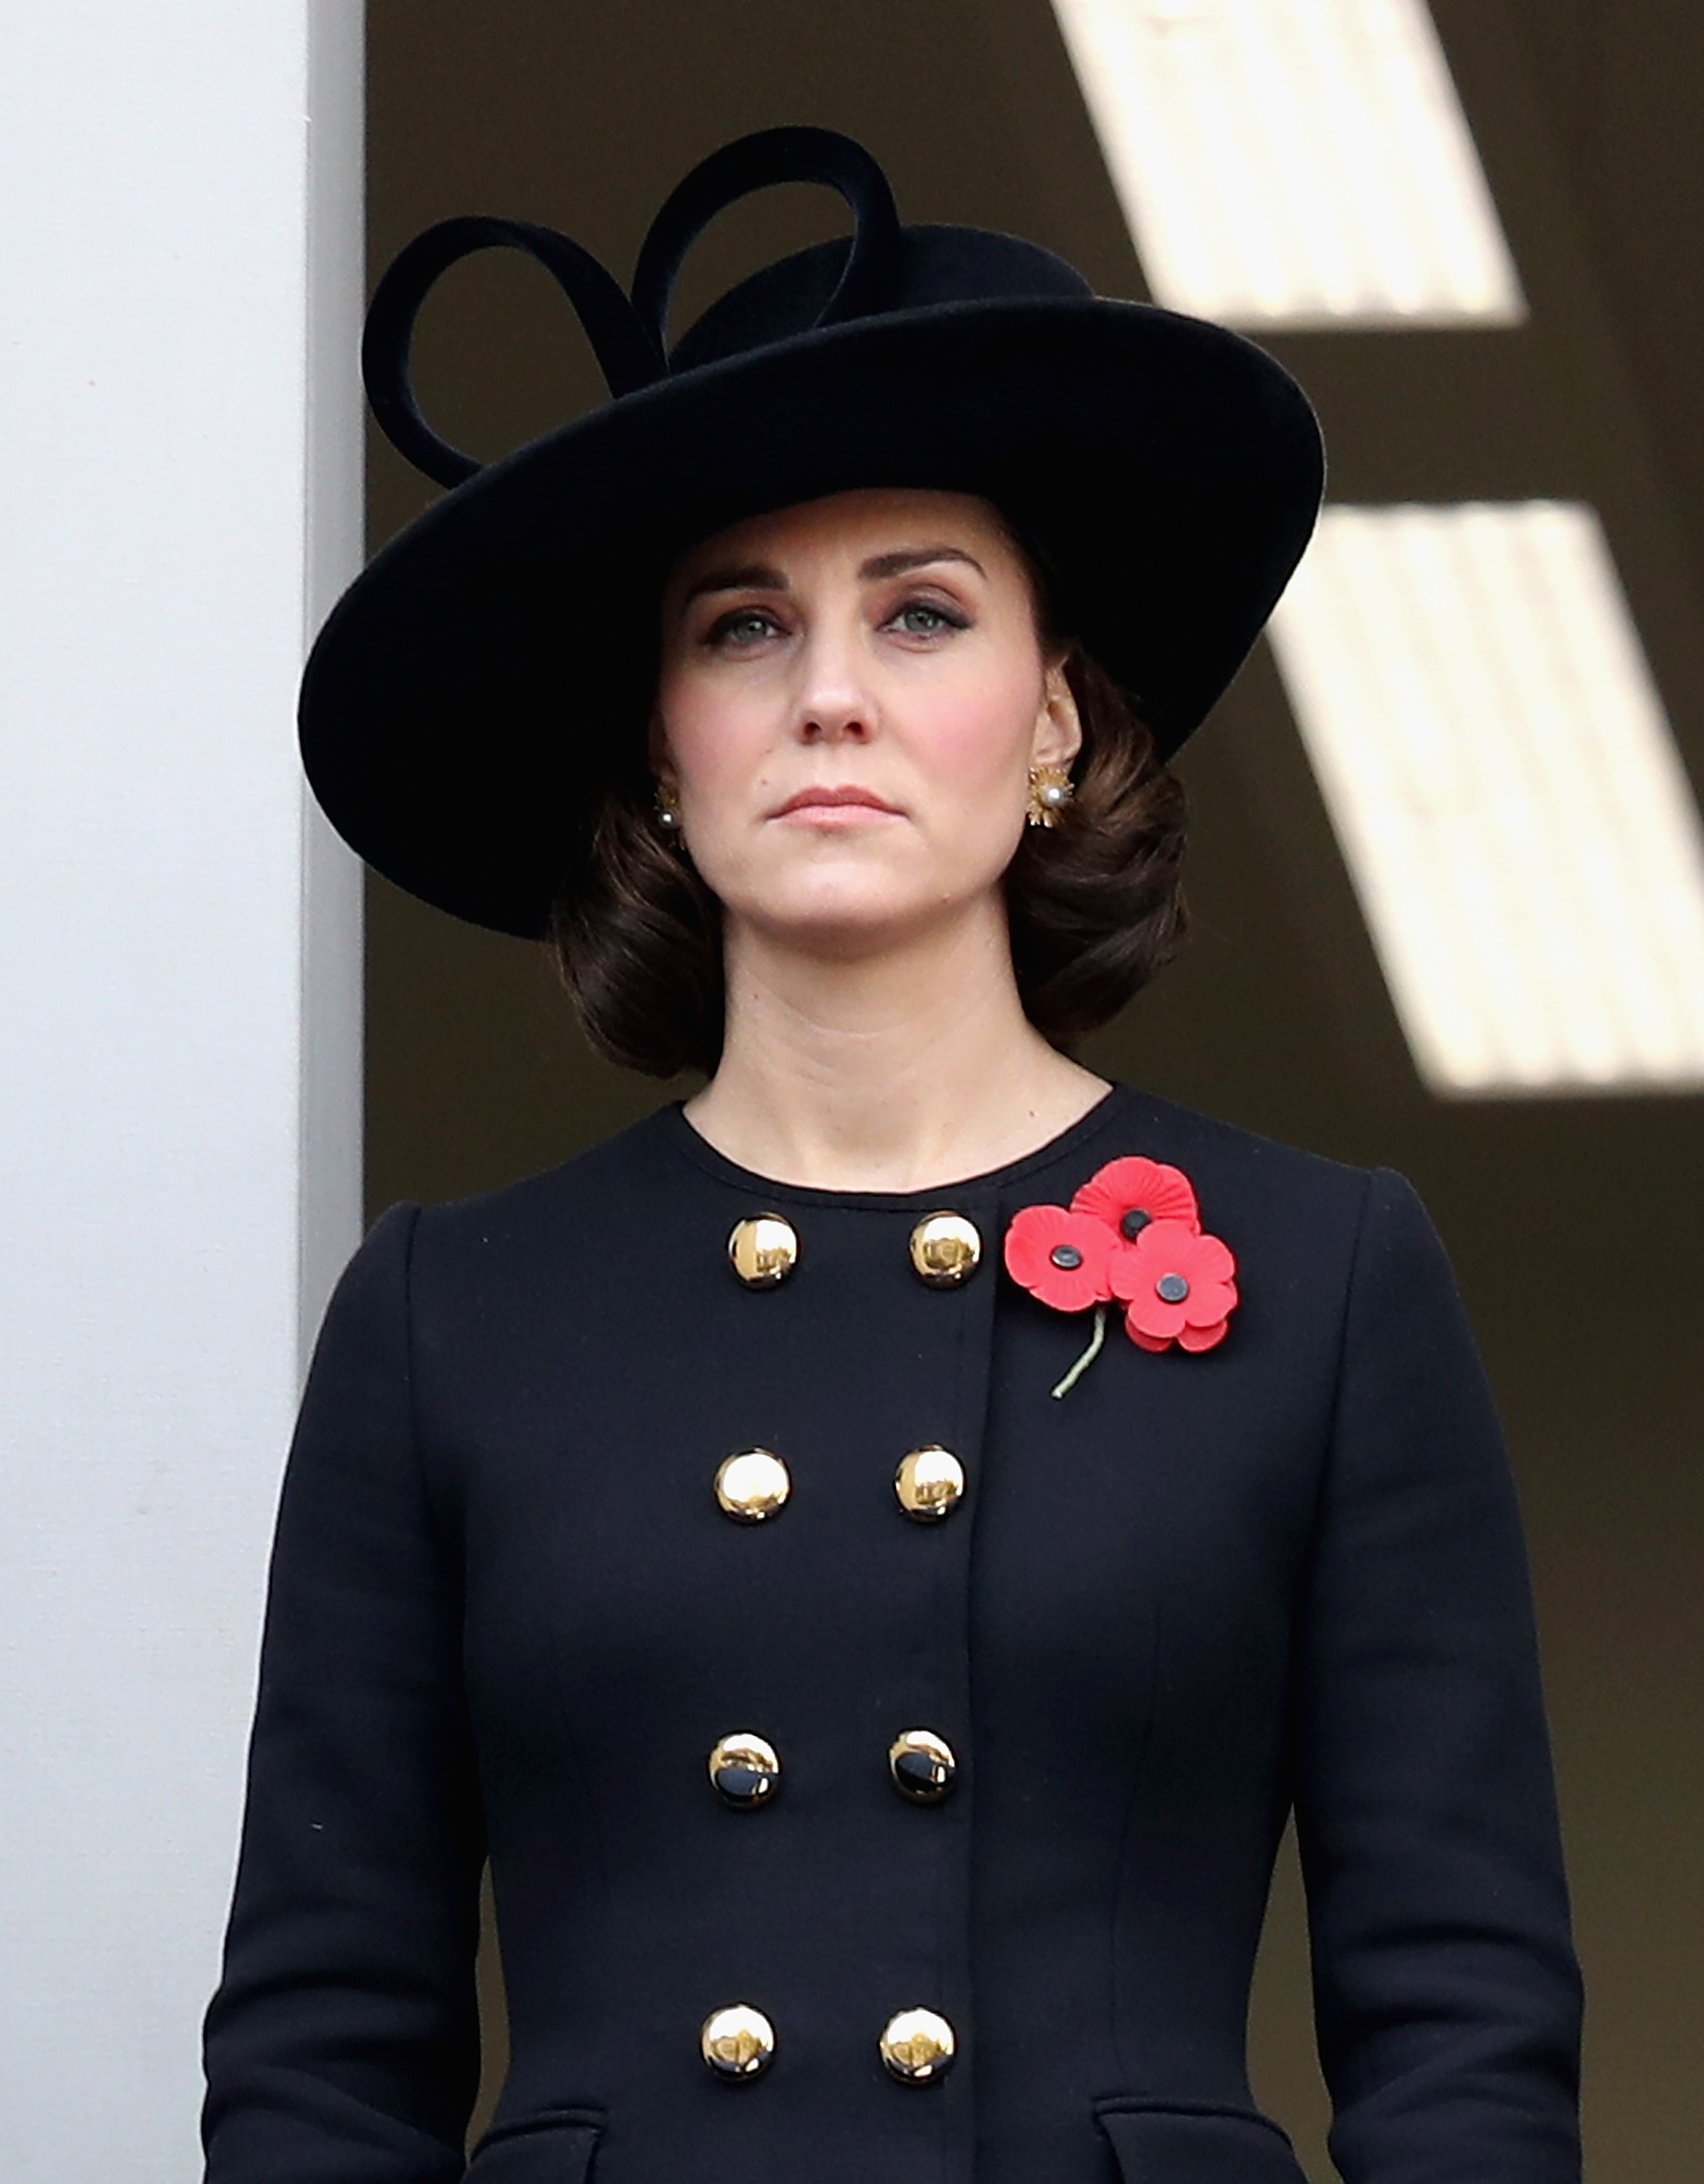 LONDON, ENGLAND - NOVEMBER 12: Catherine, Duchess of Cambridge during the annual Remembrance Sunday memorial on November 12, 2017 in London, England. The Prince of Wales, senior politicians, including the British Prime Minister and representatives from the armed forces pay tribute to those who have suffered or died at war. (Photo by Chris Jackson/Getty Images)